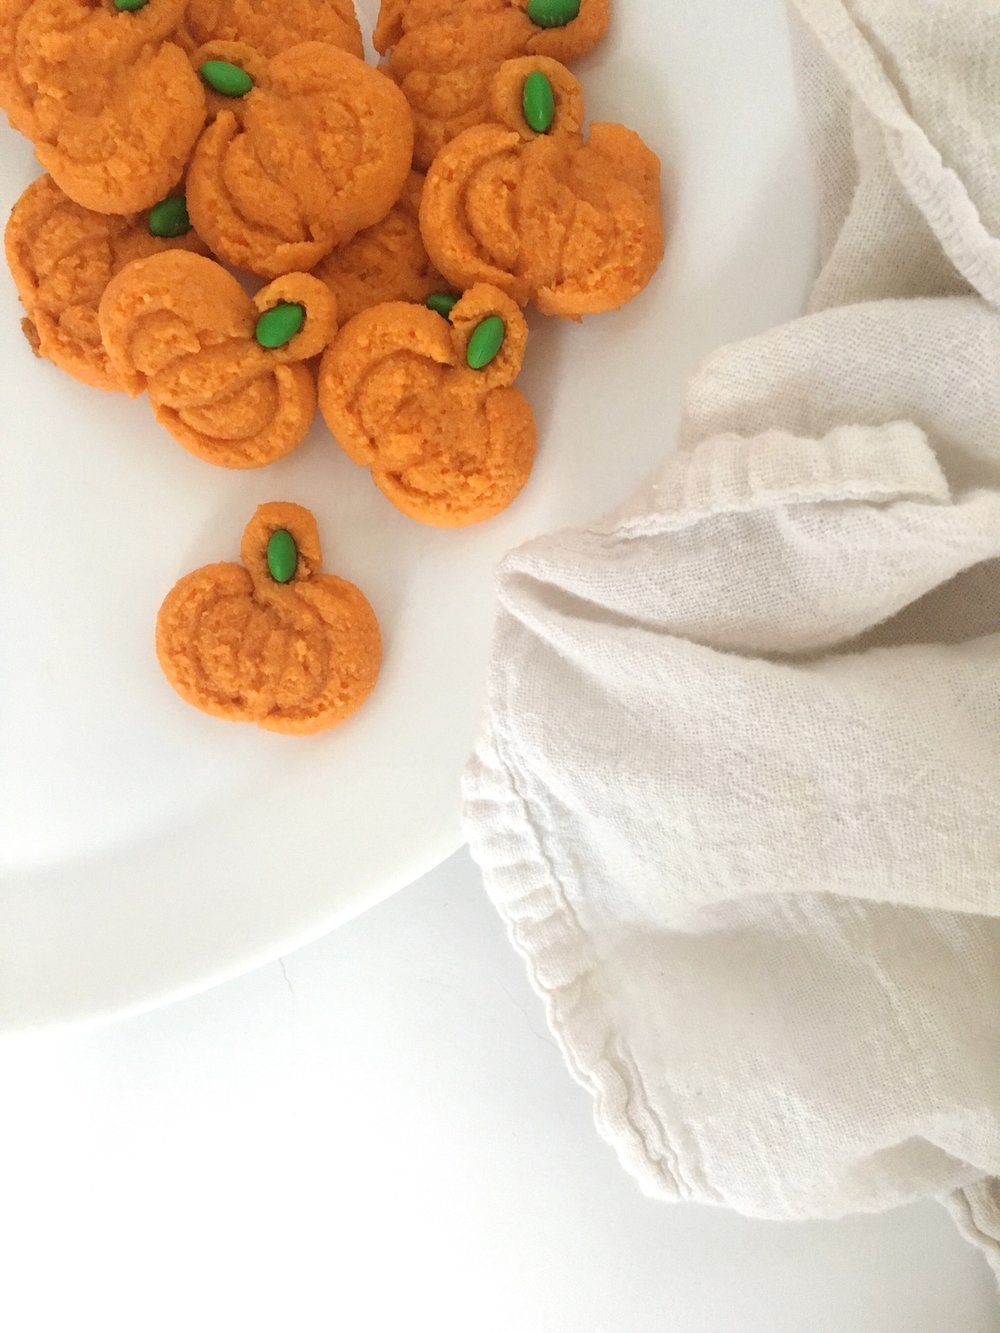 The Busy Bee Pumpkin Spritz Cookies Baking a Difference with OXO #OXOgoodcookies